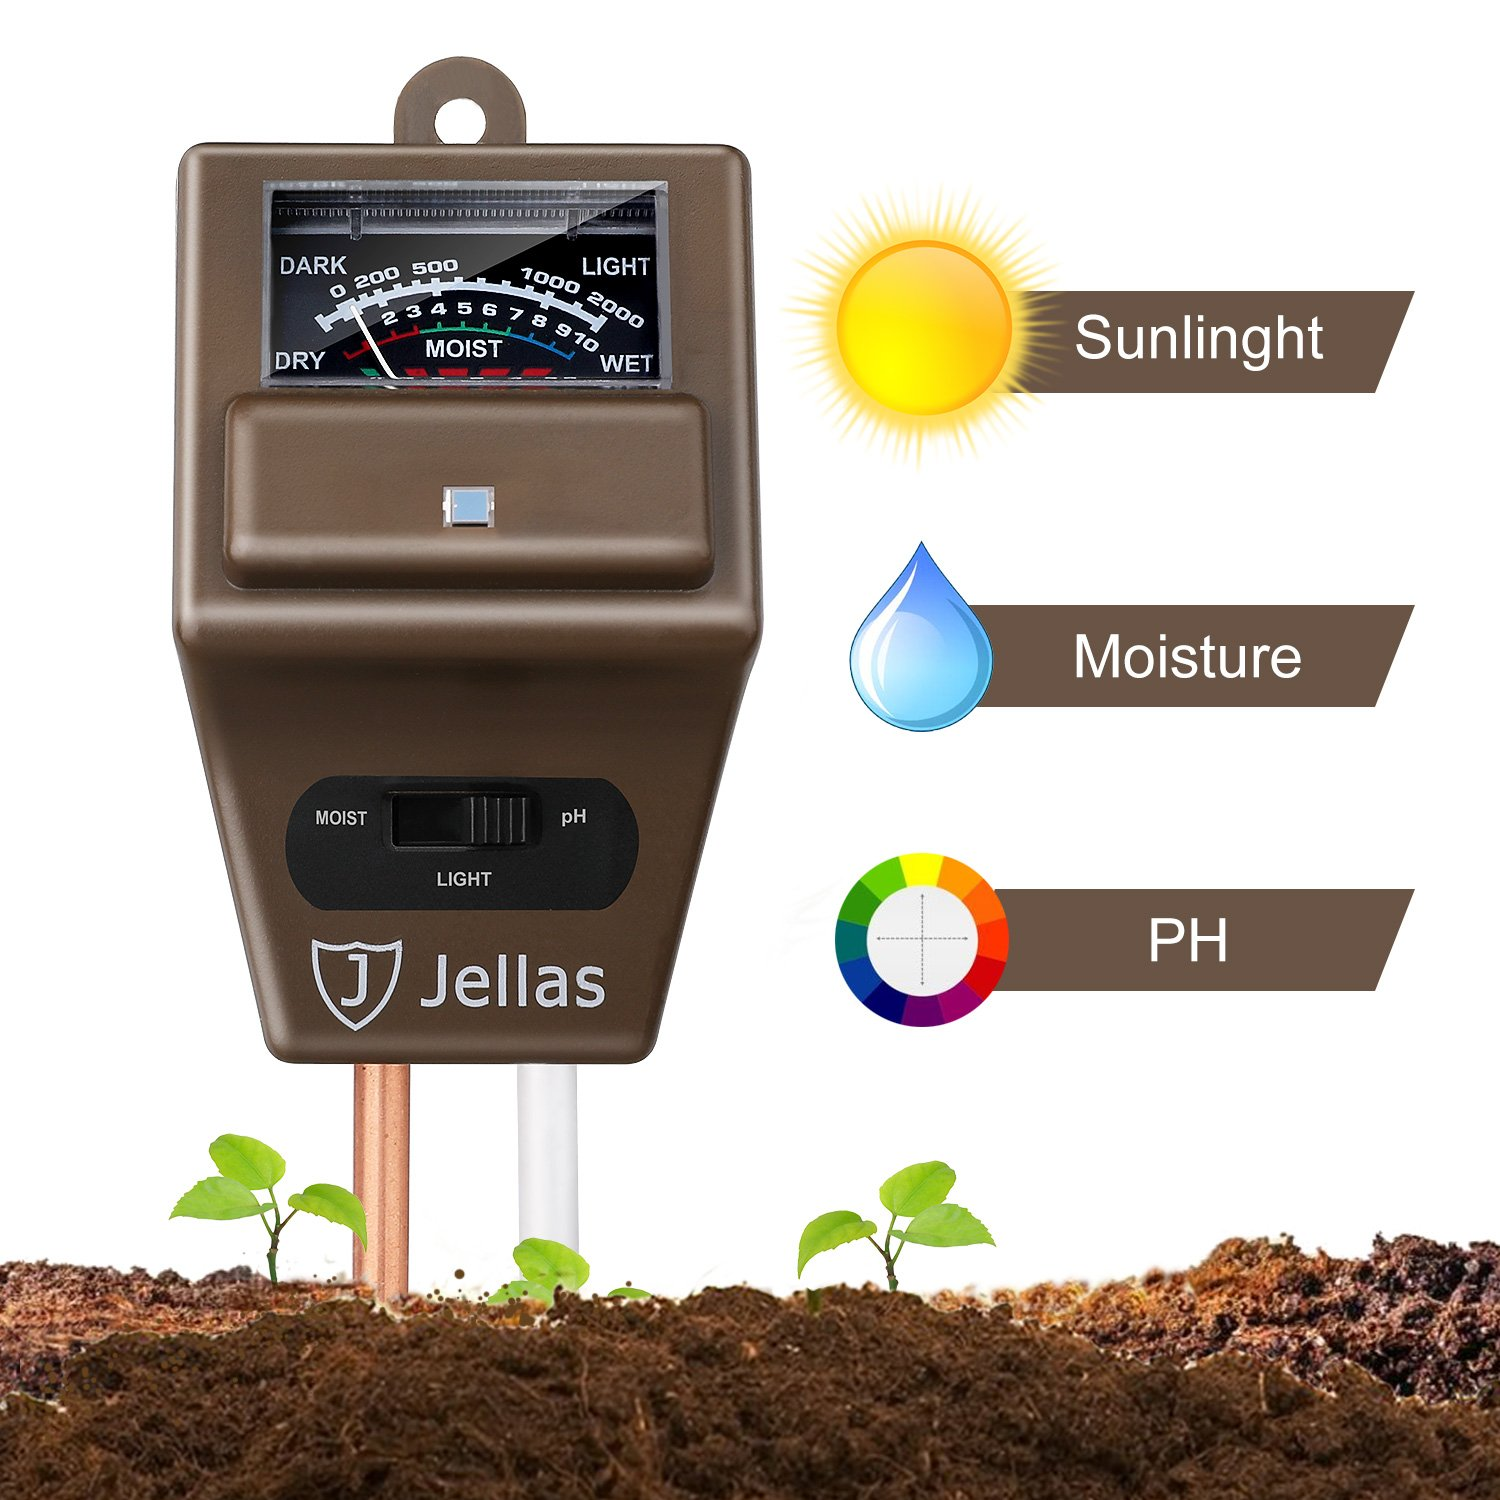 Jellas Soil Moisture Meter - 3 in 1 Soil Tester Kit Plant Moisture Sensor Meter/Light/pH Tester for Home, Garden, Lawn, Farm Promote Plants Healthy Growth - Brown Plants-Soil-Tester-029C-Y